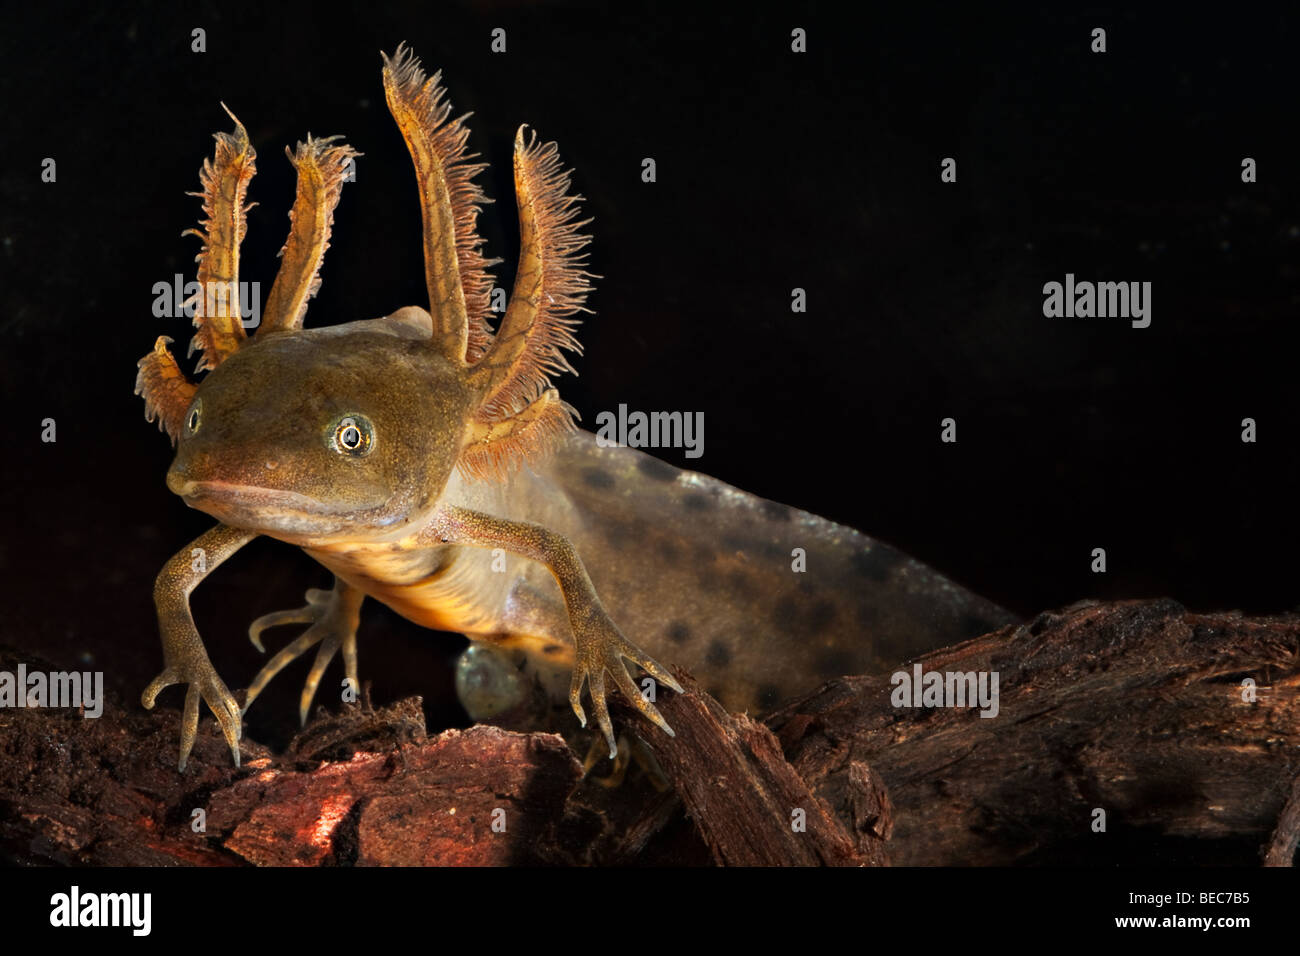 crested newt larva showing its gills - Stock Image